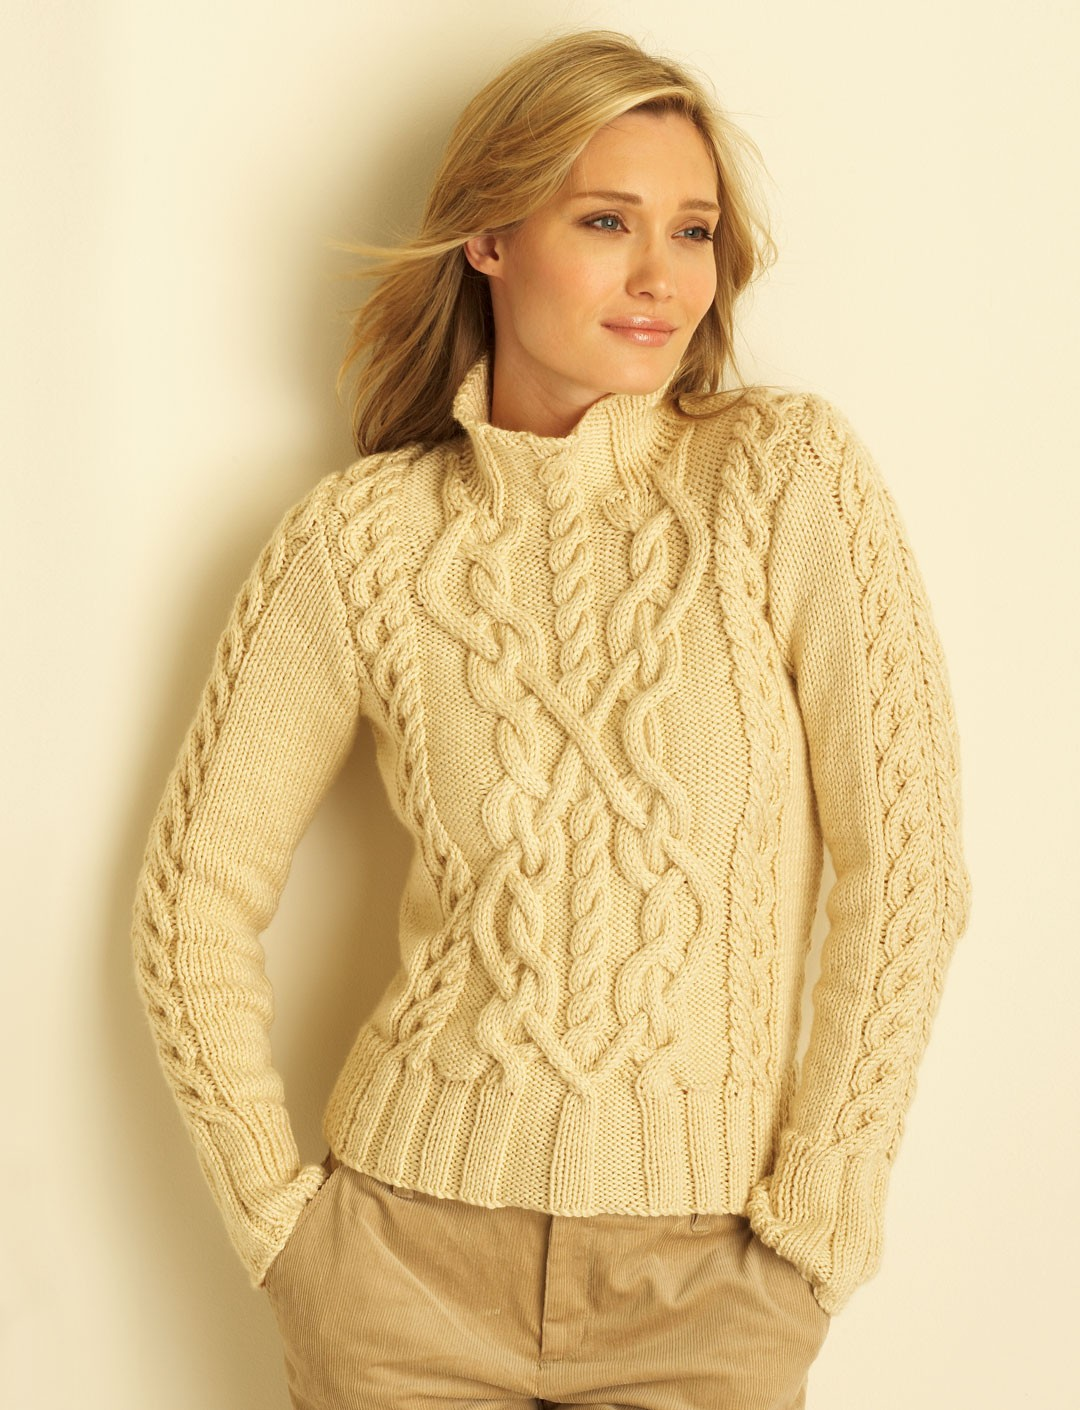 Cable sweater patterns yarnspirations cable sweater bankloansurffo Image collections